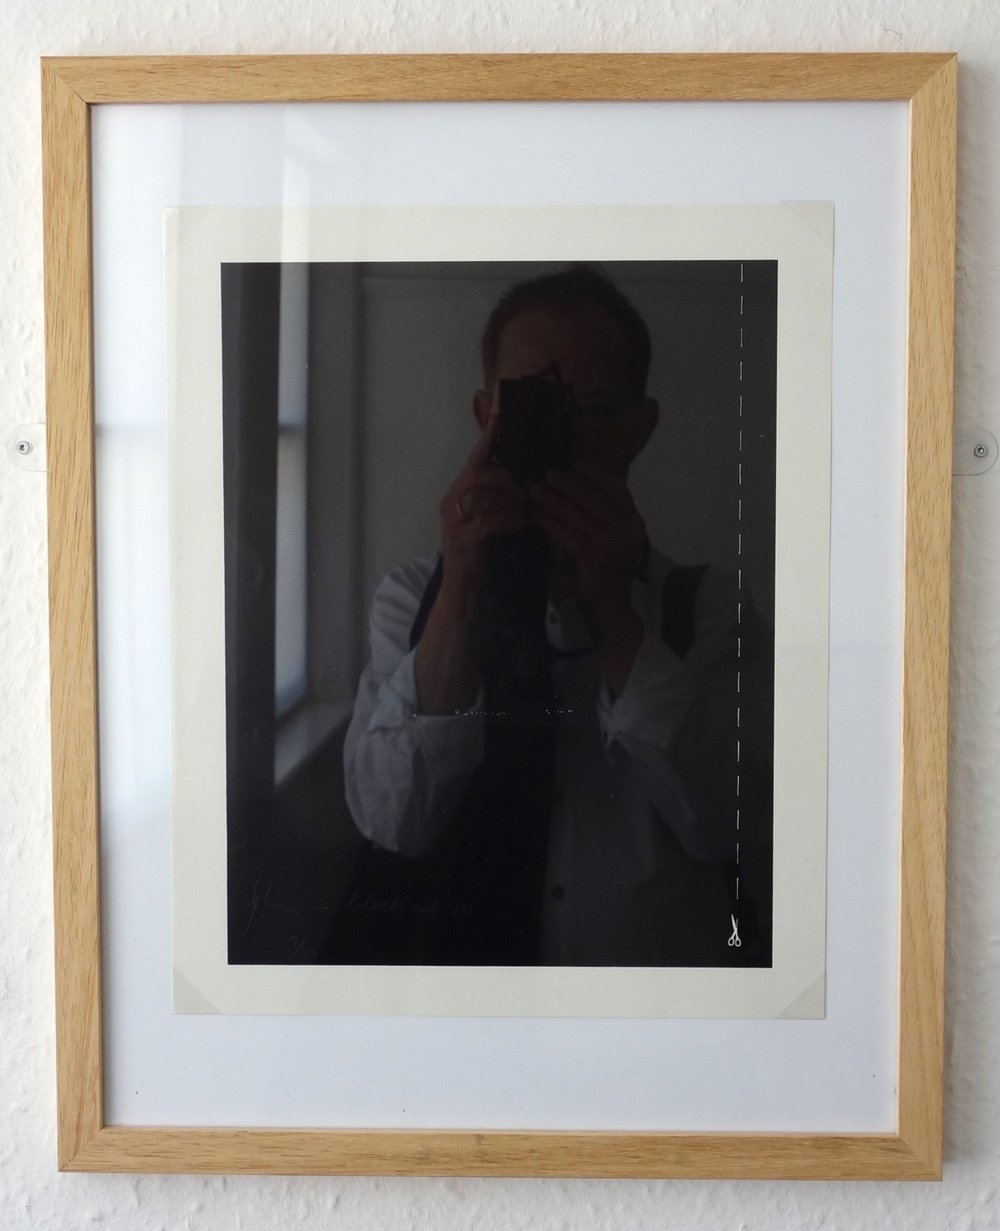 David Ward in 2017 photographing a framed work by Barry Flanagan:  Black Ad  197 0